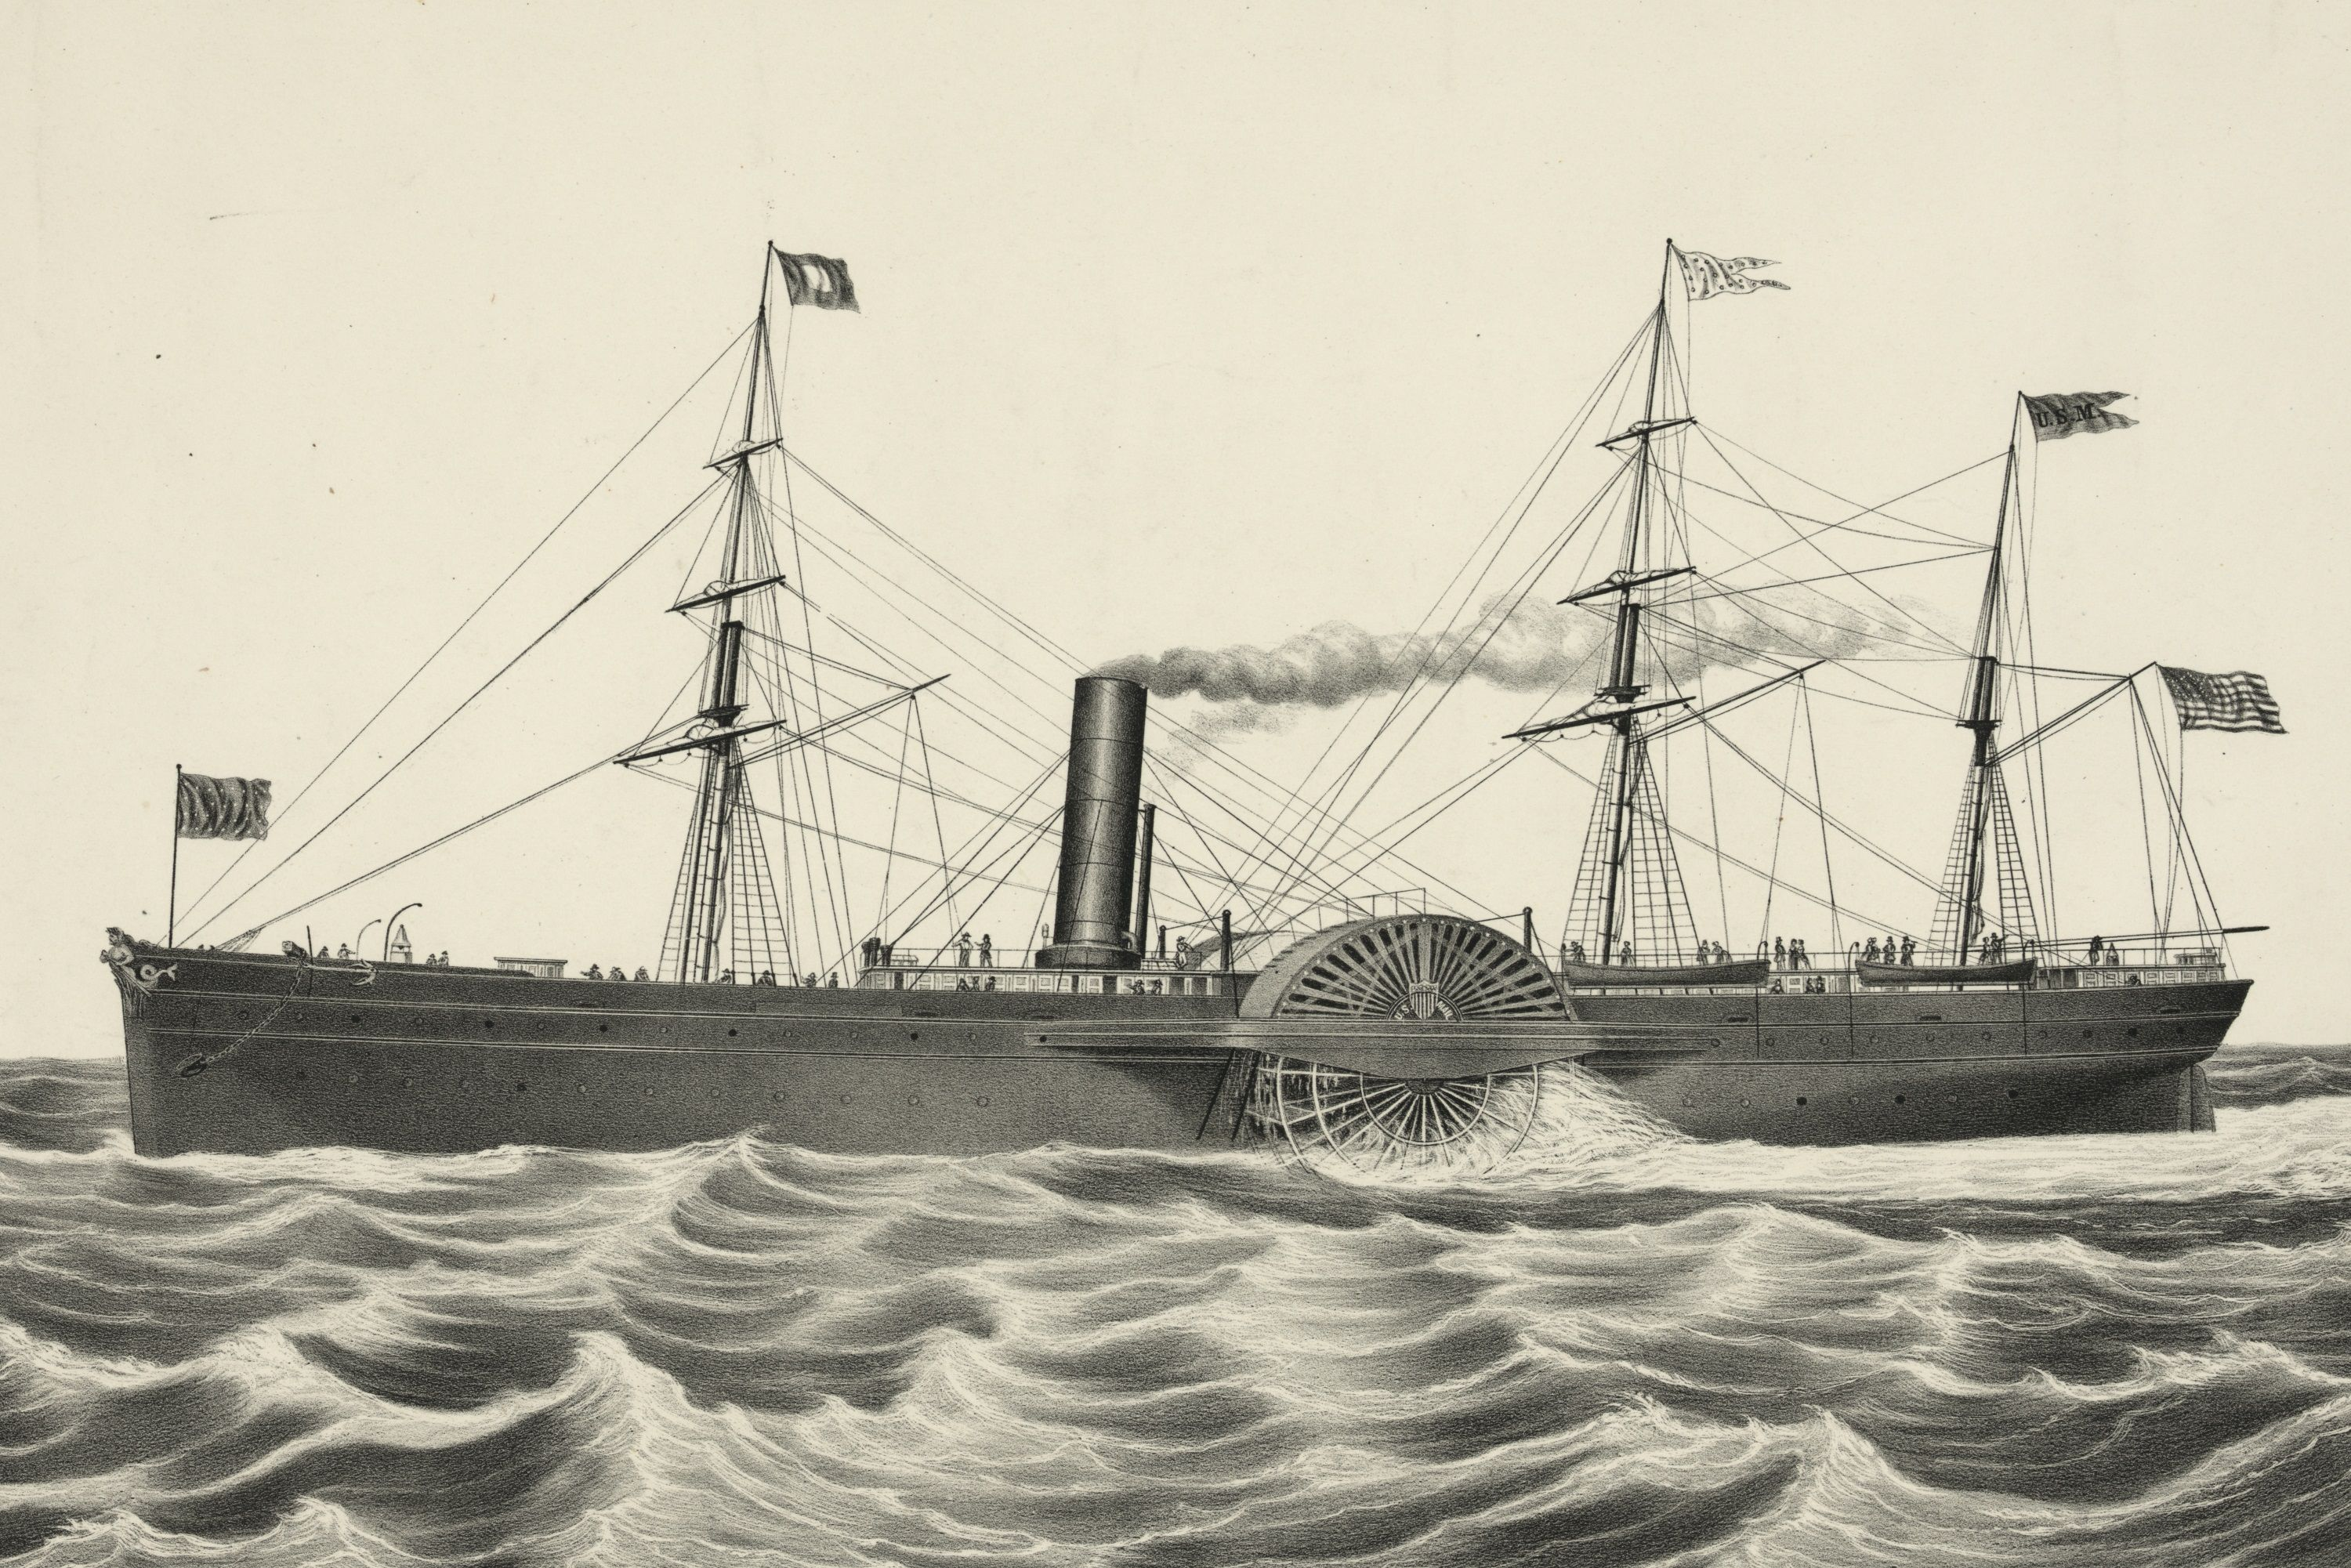 Lithograph of the SS Arctic